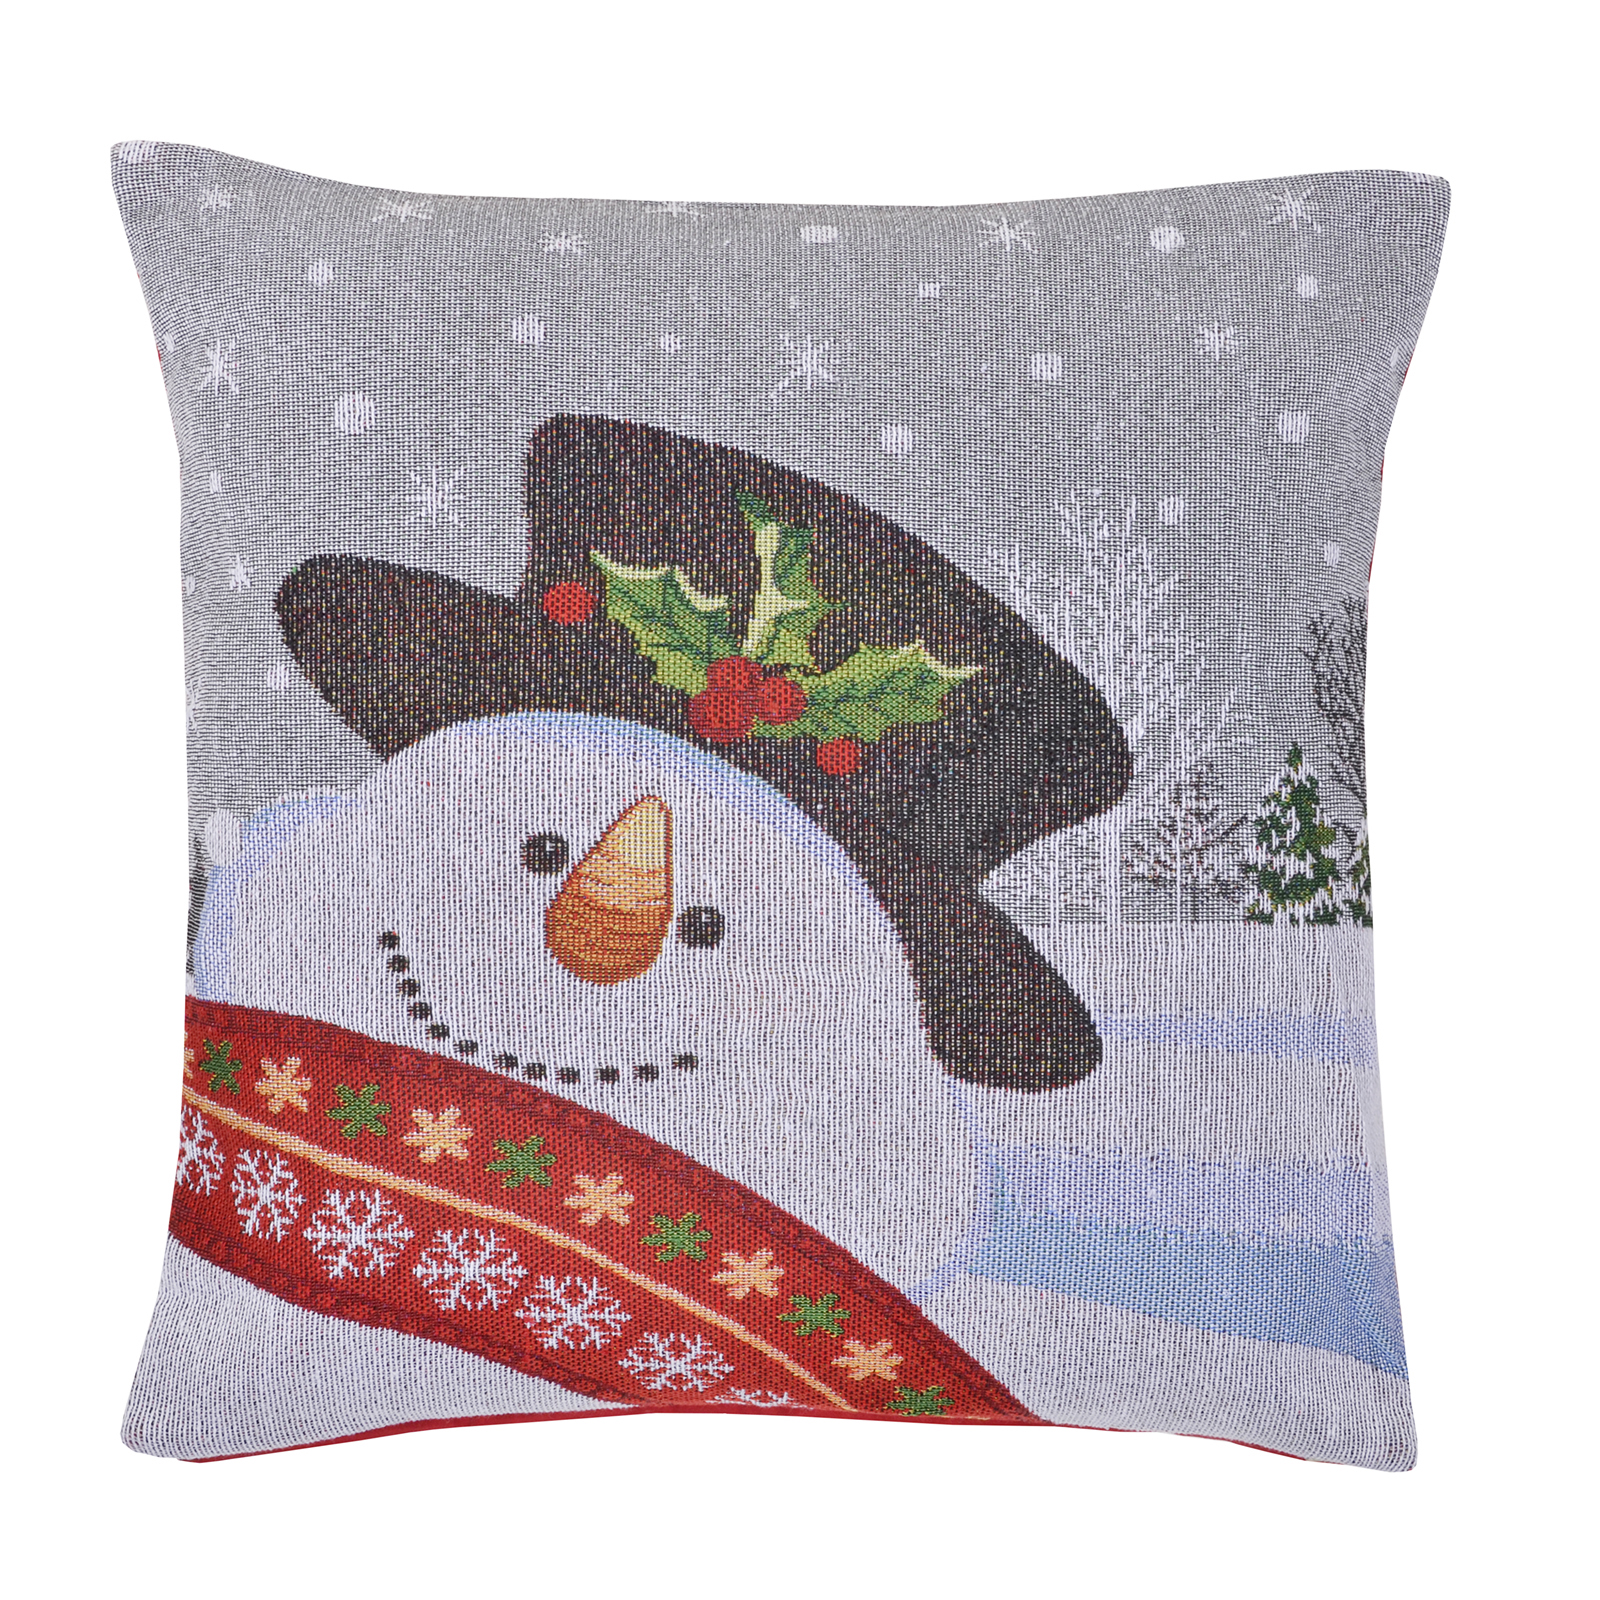 Christmas cushion cover pillow case square 45 x 45cm for Sofa bed for xmas